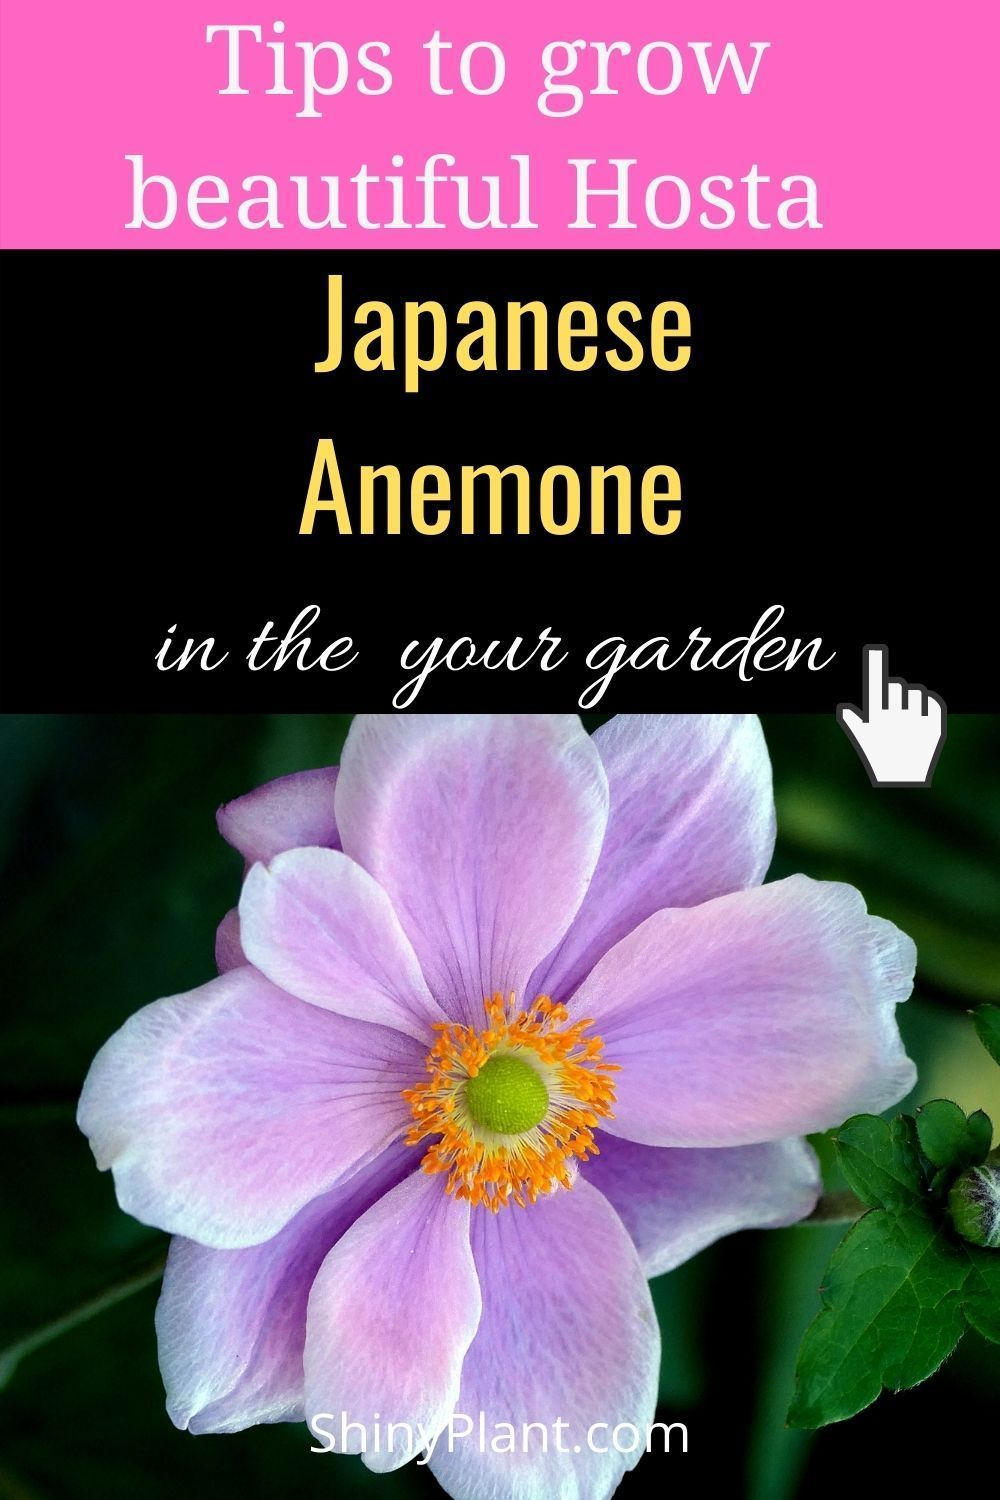 How To Grow Japanese Anemone In The Garden In 2020 Plants Perennial Plants Japanese Anemone